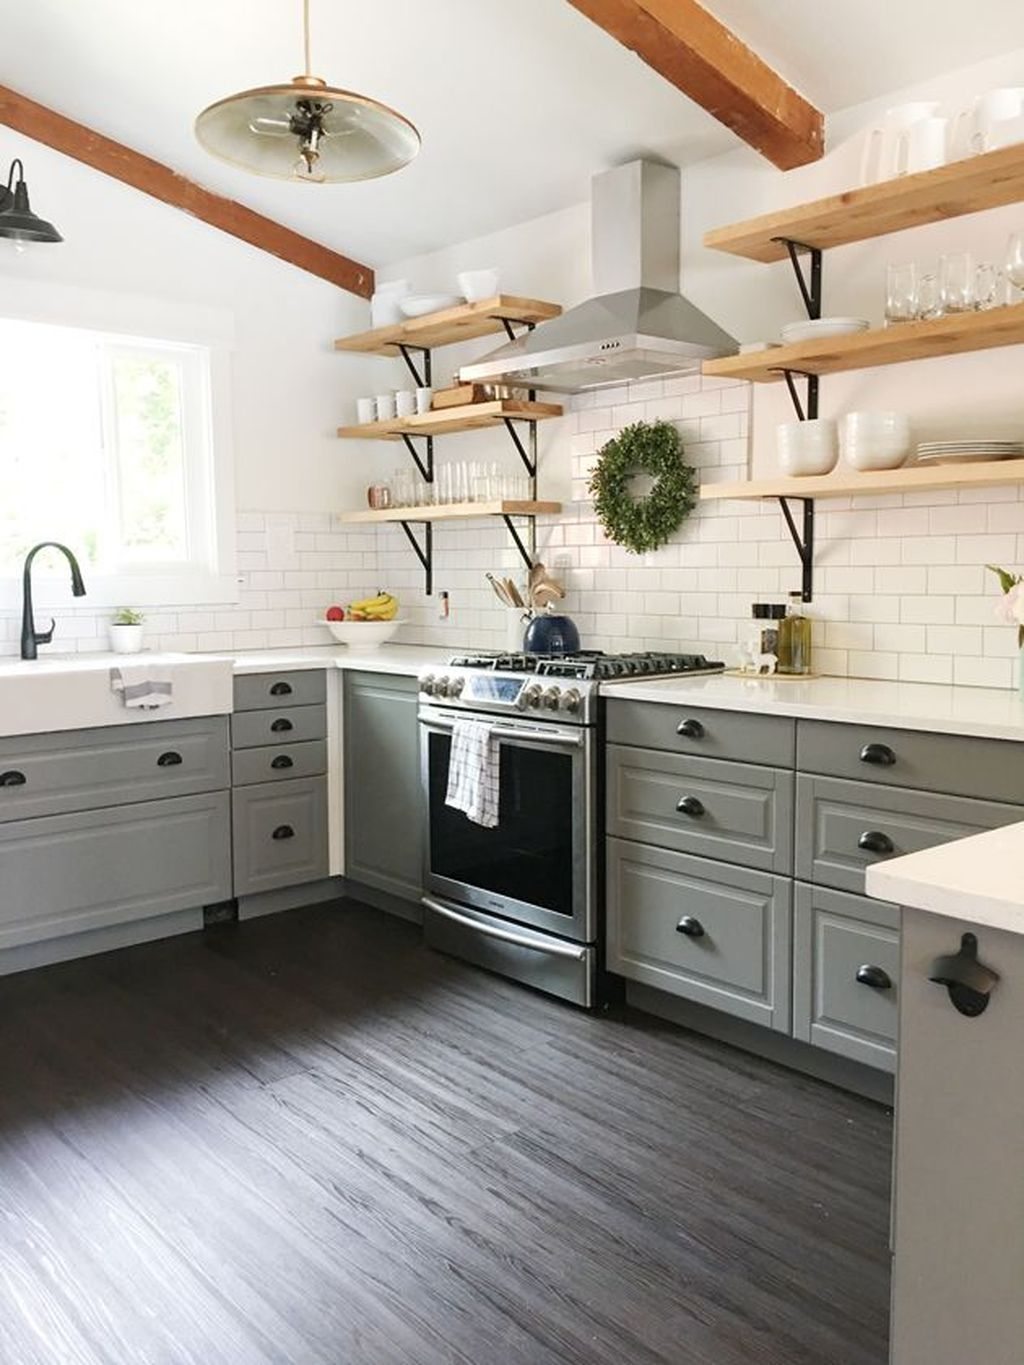 Top Ikea Kitchen Design Ideas 2017 35 Farmhouse Kitchen Decor Kitchen Cabinets Decor Modern Farmhouse Kitchens